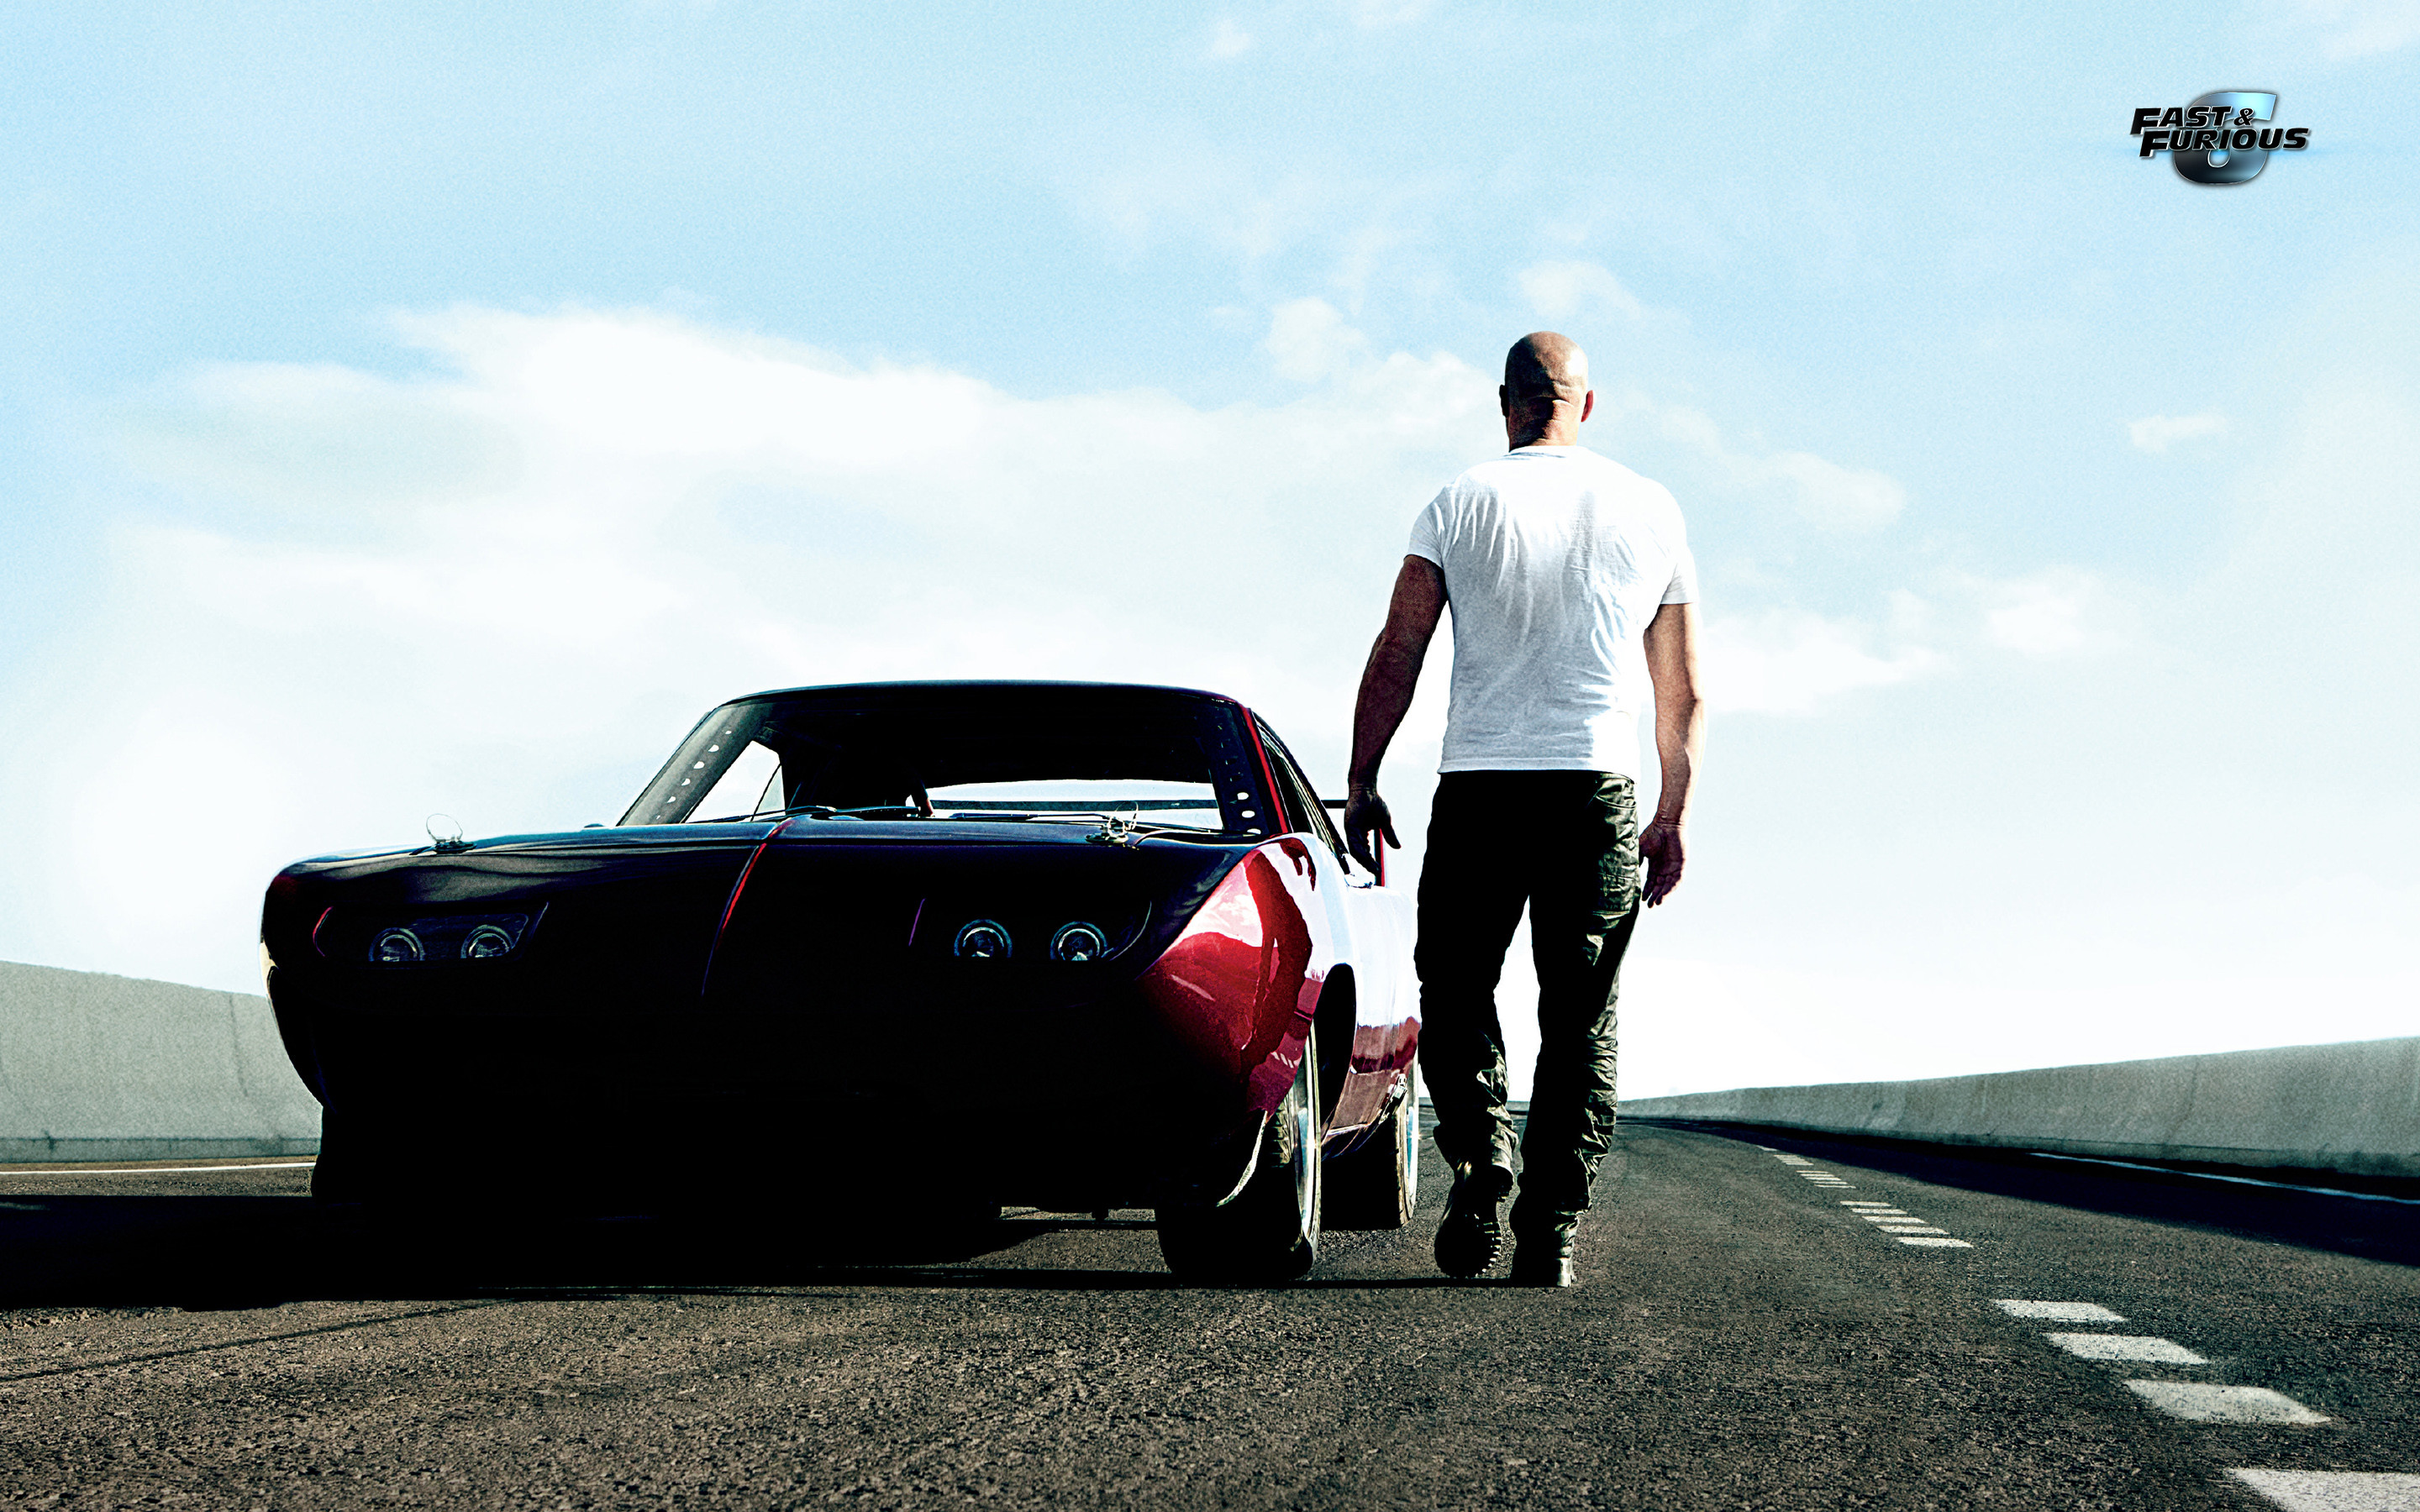 Widescreen Furious Up Full Hd Pics Of Fast And Dodge Charger Wallpaper  Mobile Phones Cefec Fd